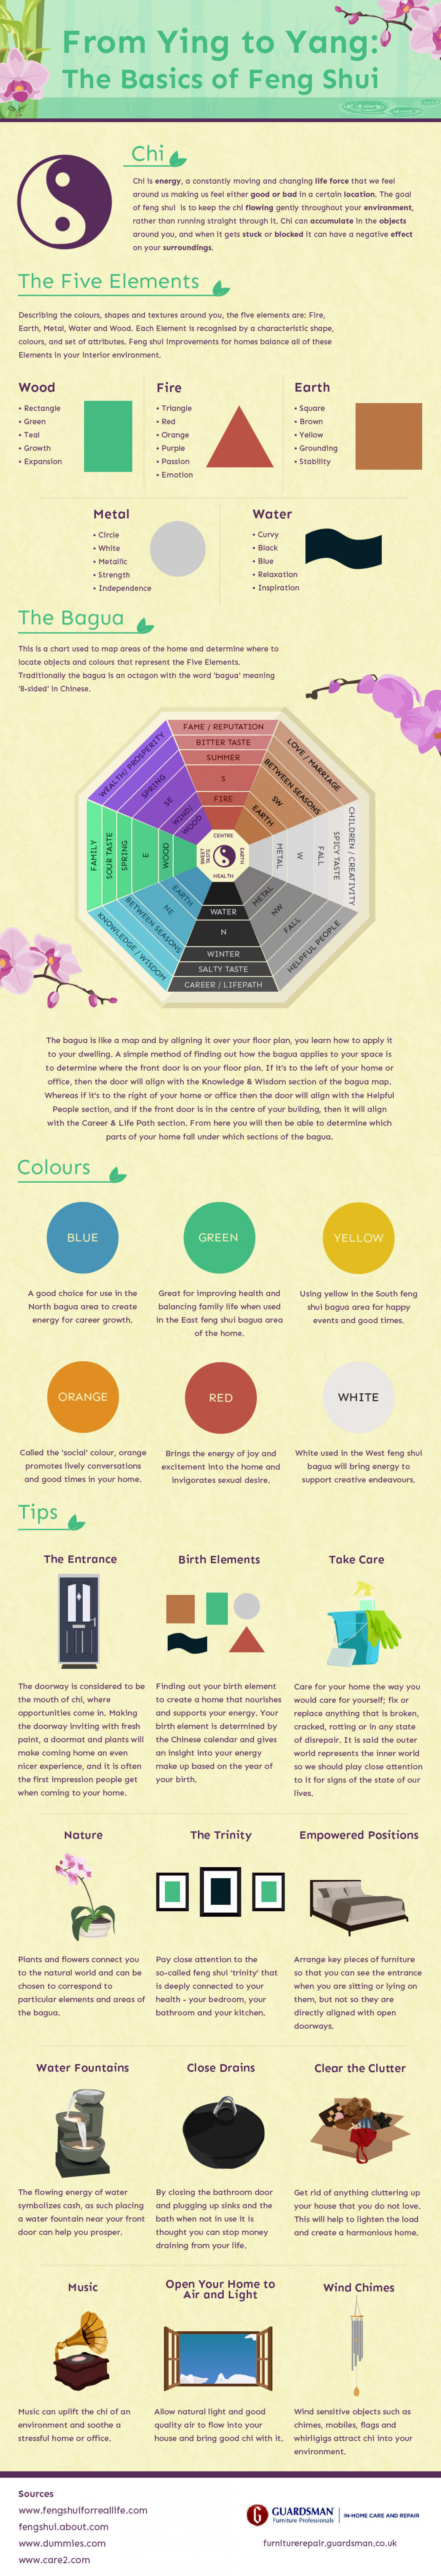 From Ying to Yang: The Basics of Feng Shui Infographic